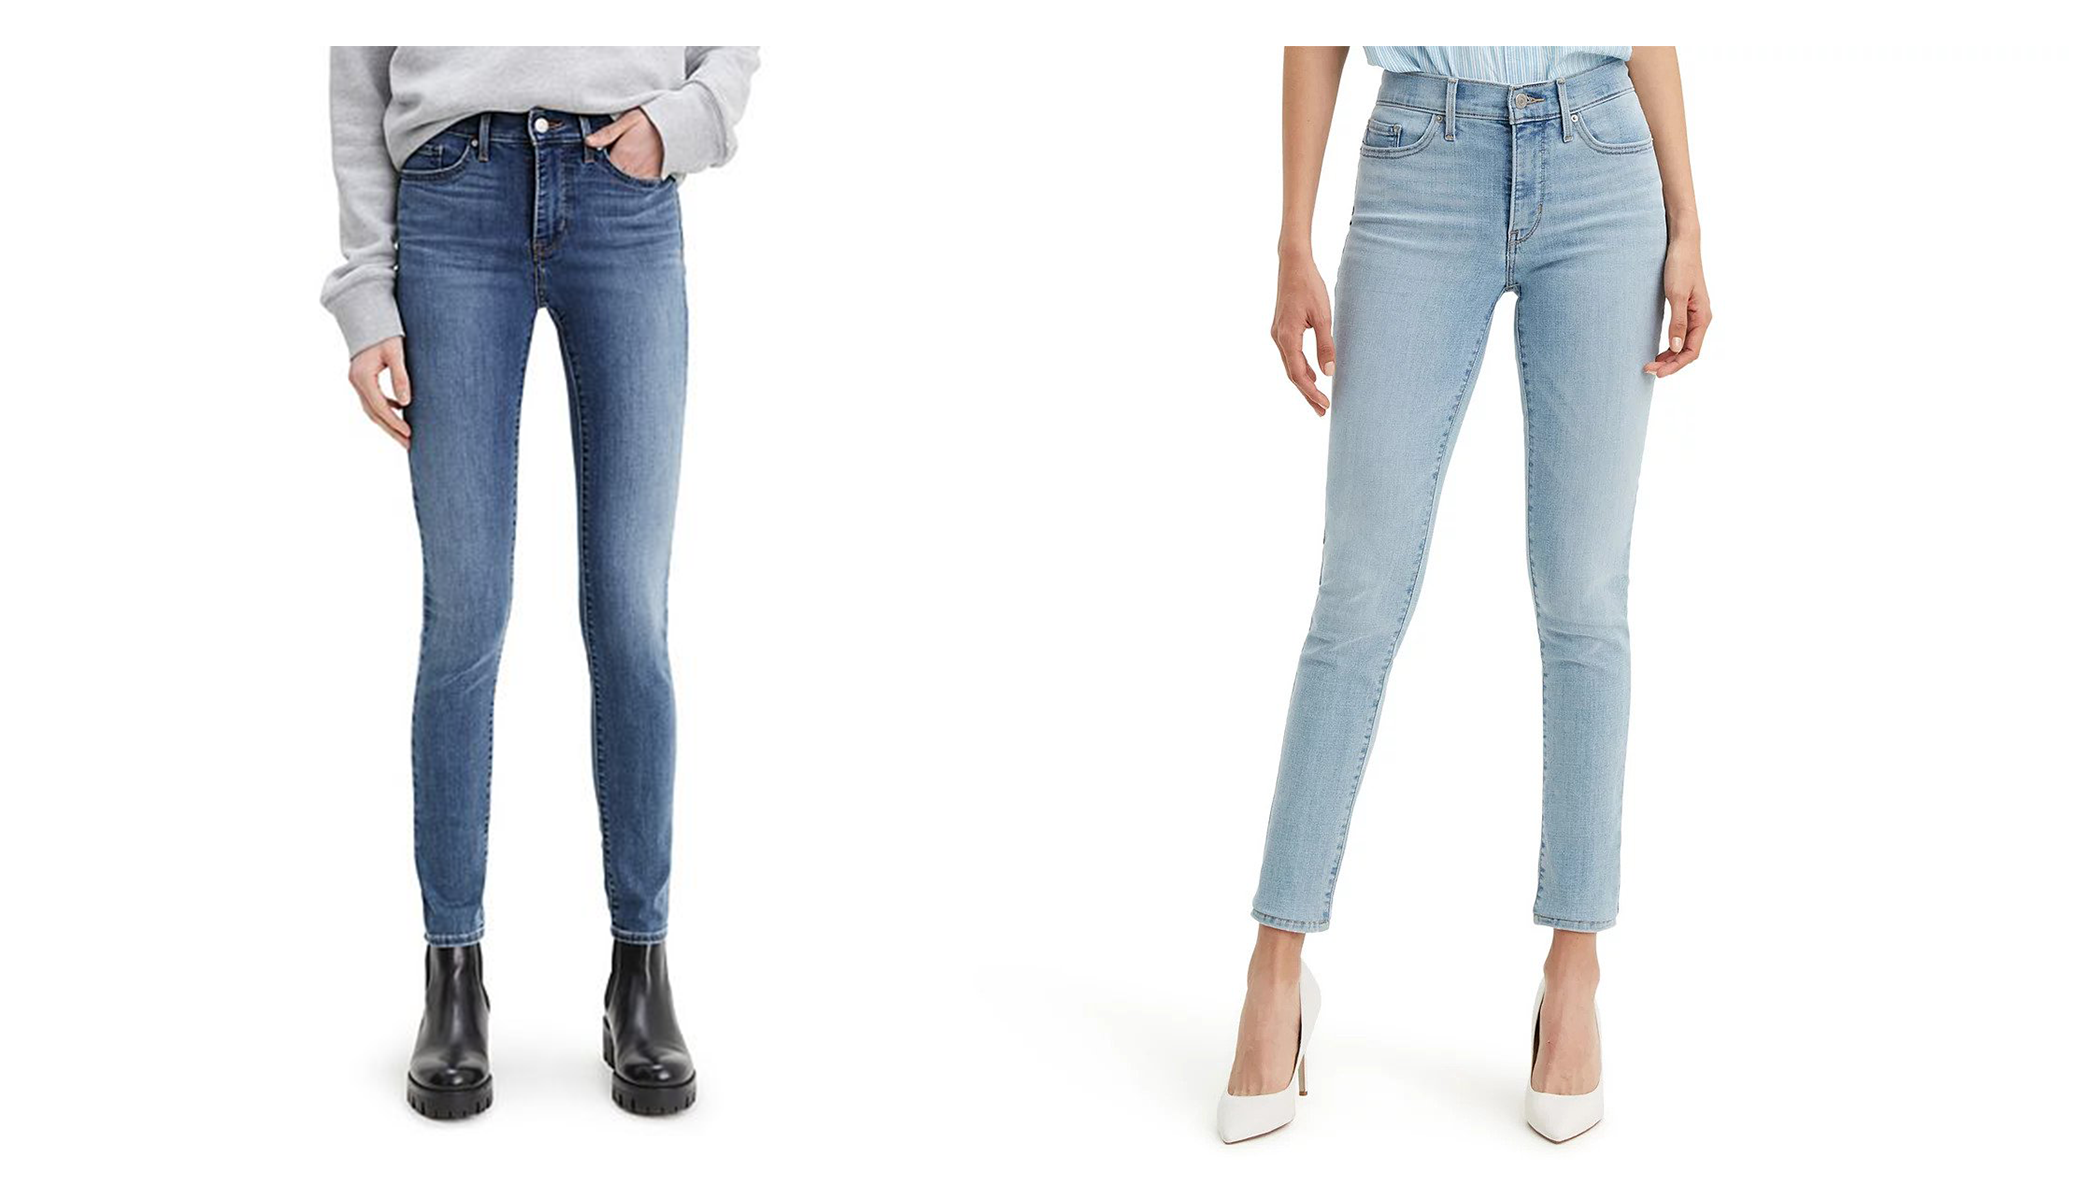 One woman wearing dark Levi's 311 jeans, and another woman wearing a pair in lighter blue denim.